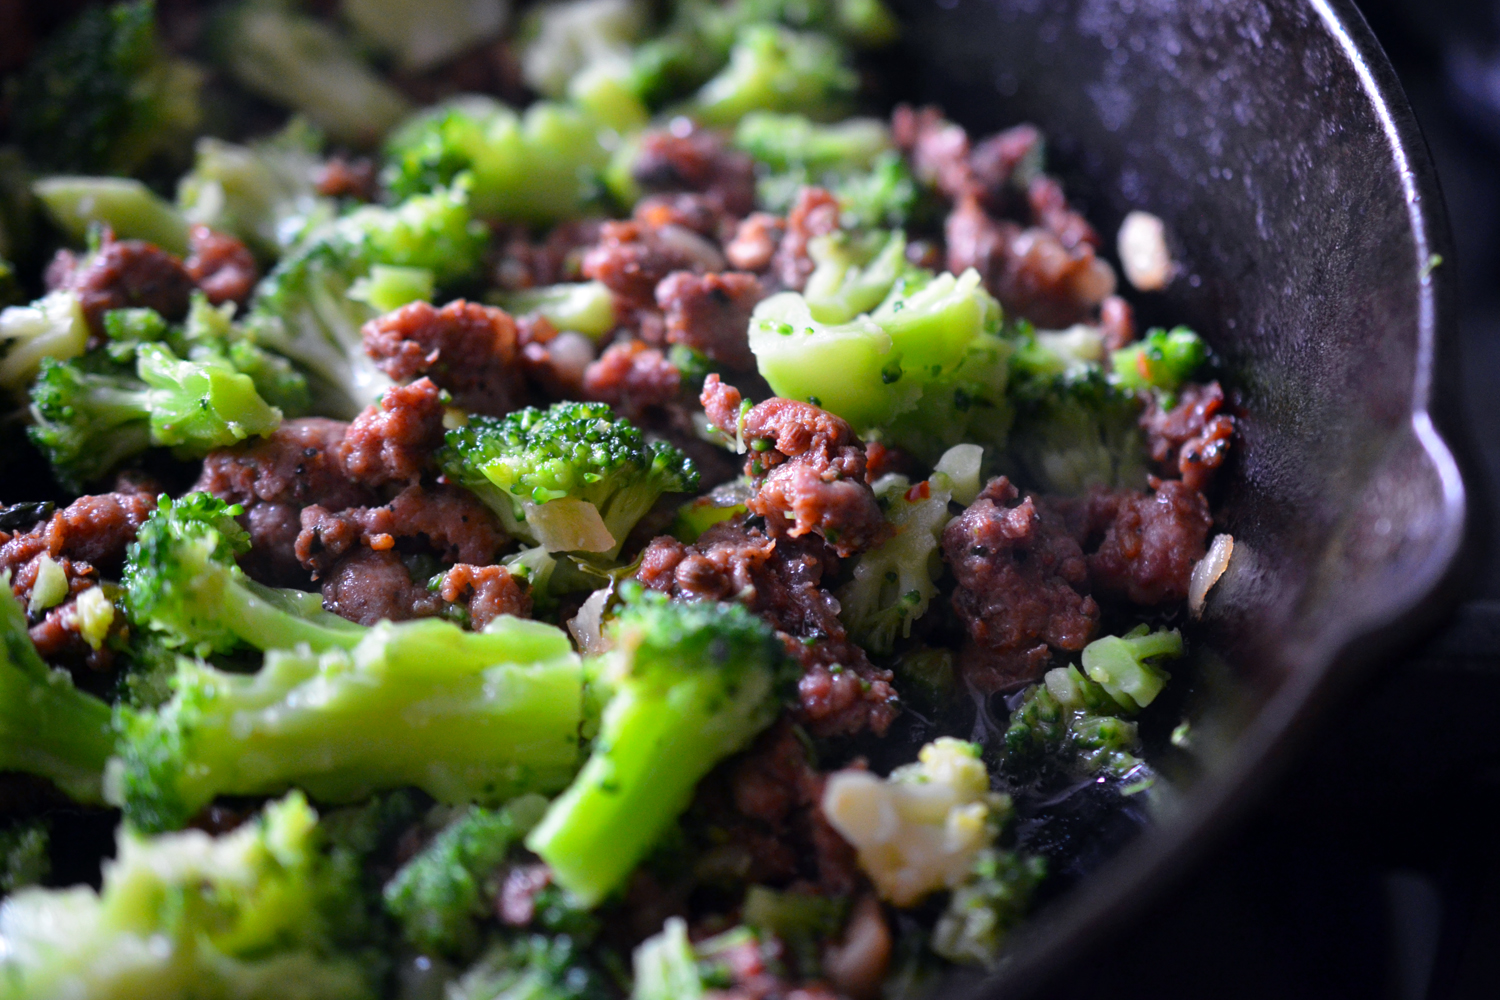 A close up of a cast iron frying pan filled with leftover ground meat and cut up frozen broccoli.